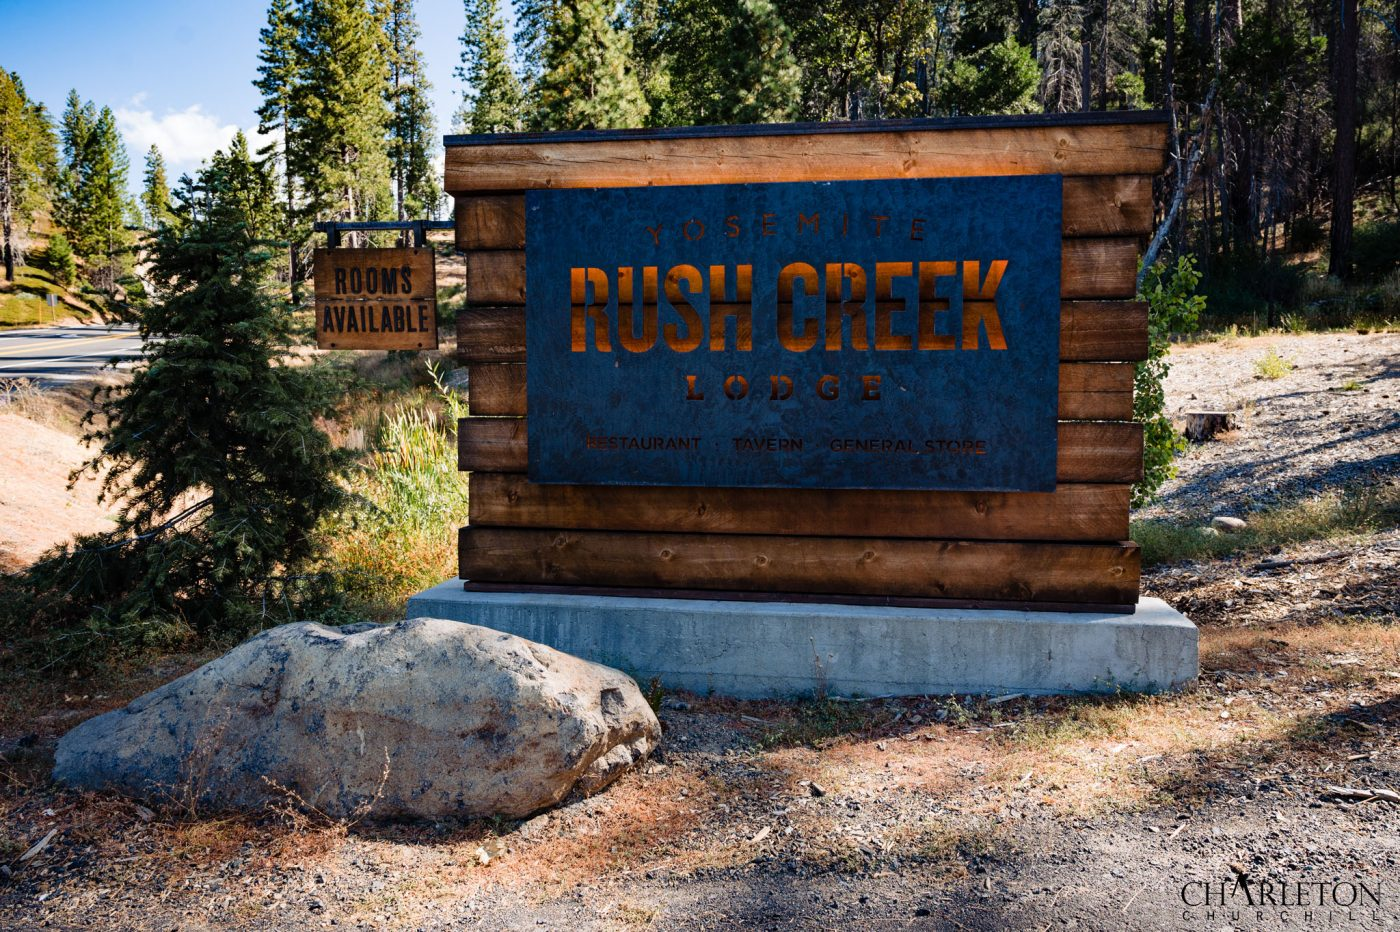 sign and logo of rush creek